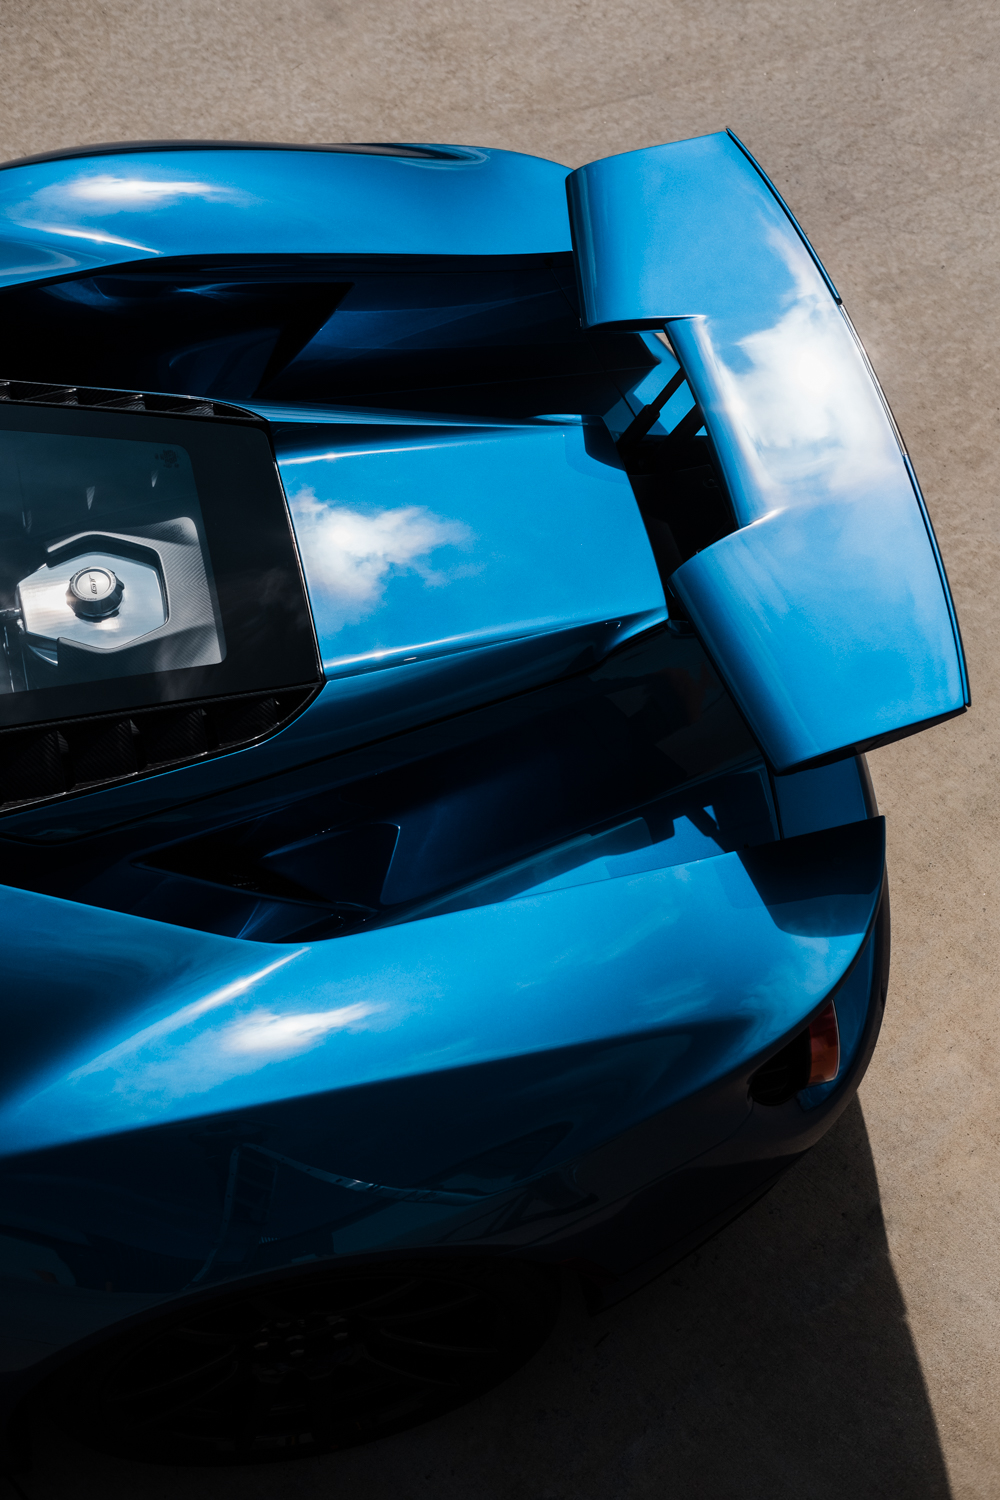 Ford GT-XPEL Ultimate Paint Protection Film-Full-body Wrap-Paint Protection Film-Clear Bra-Ford Performance-185.jpg